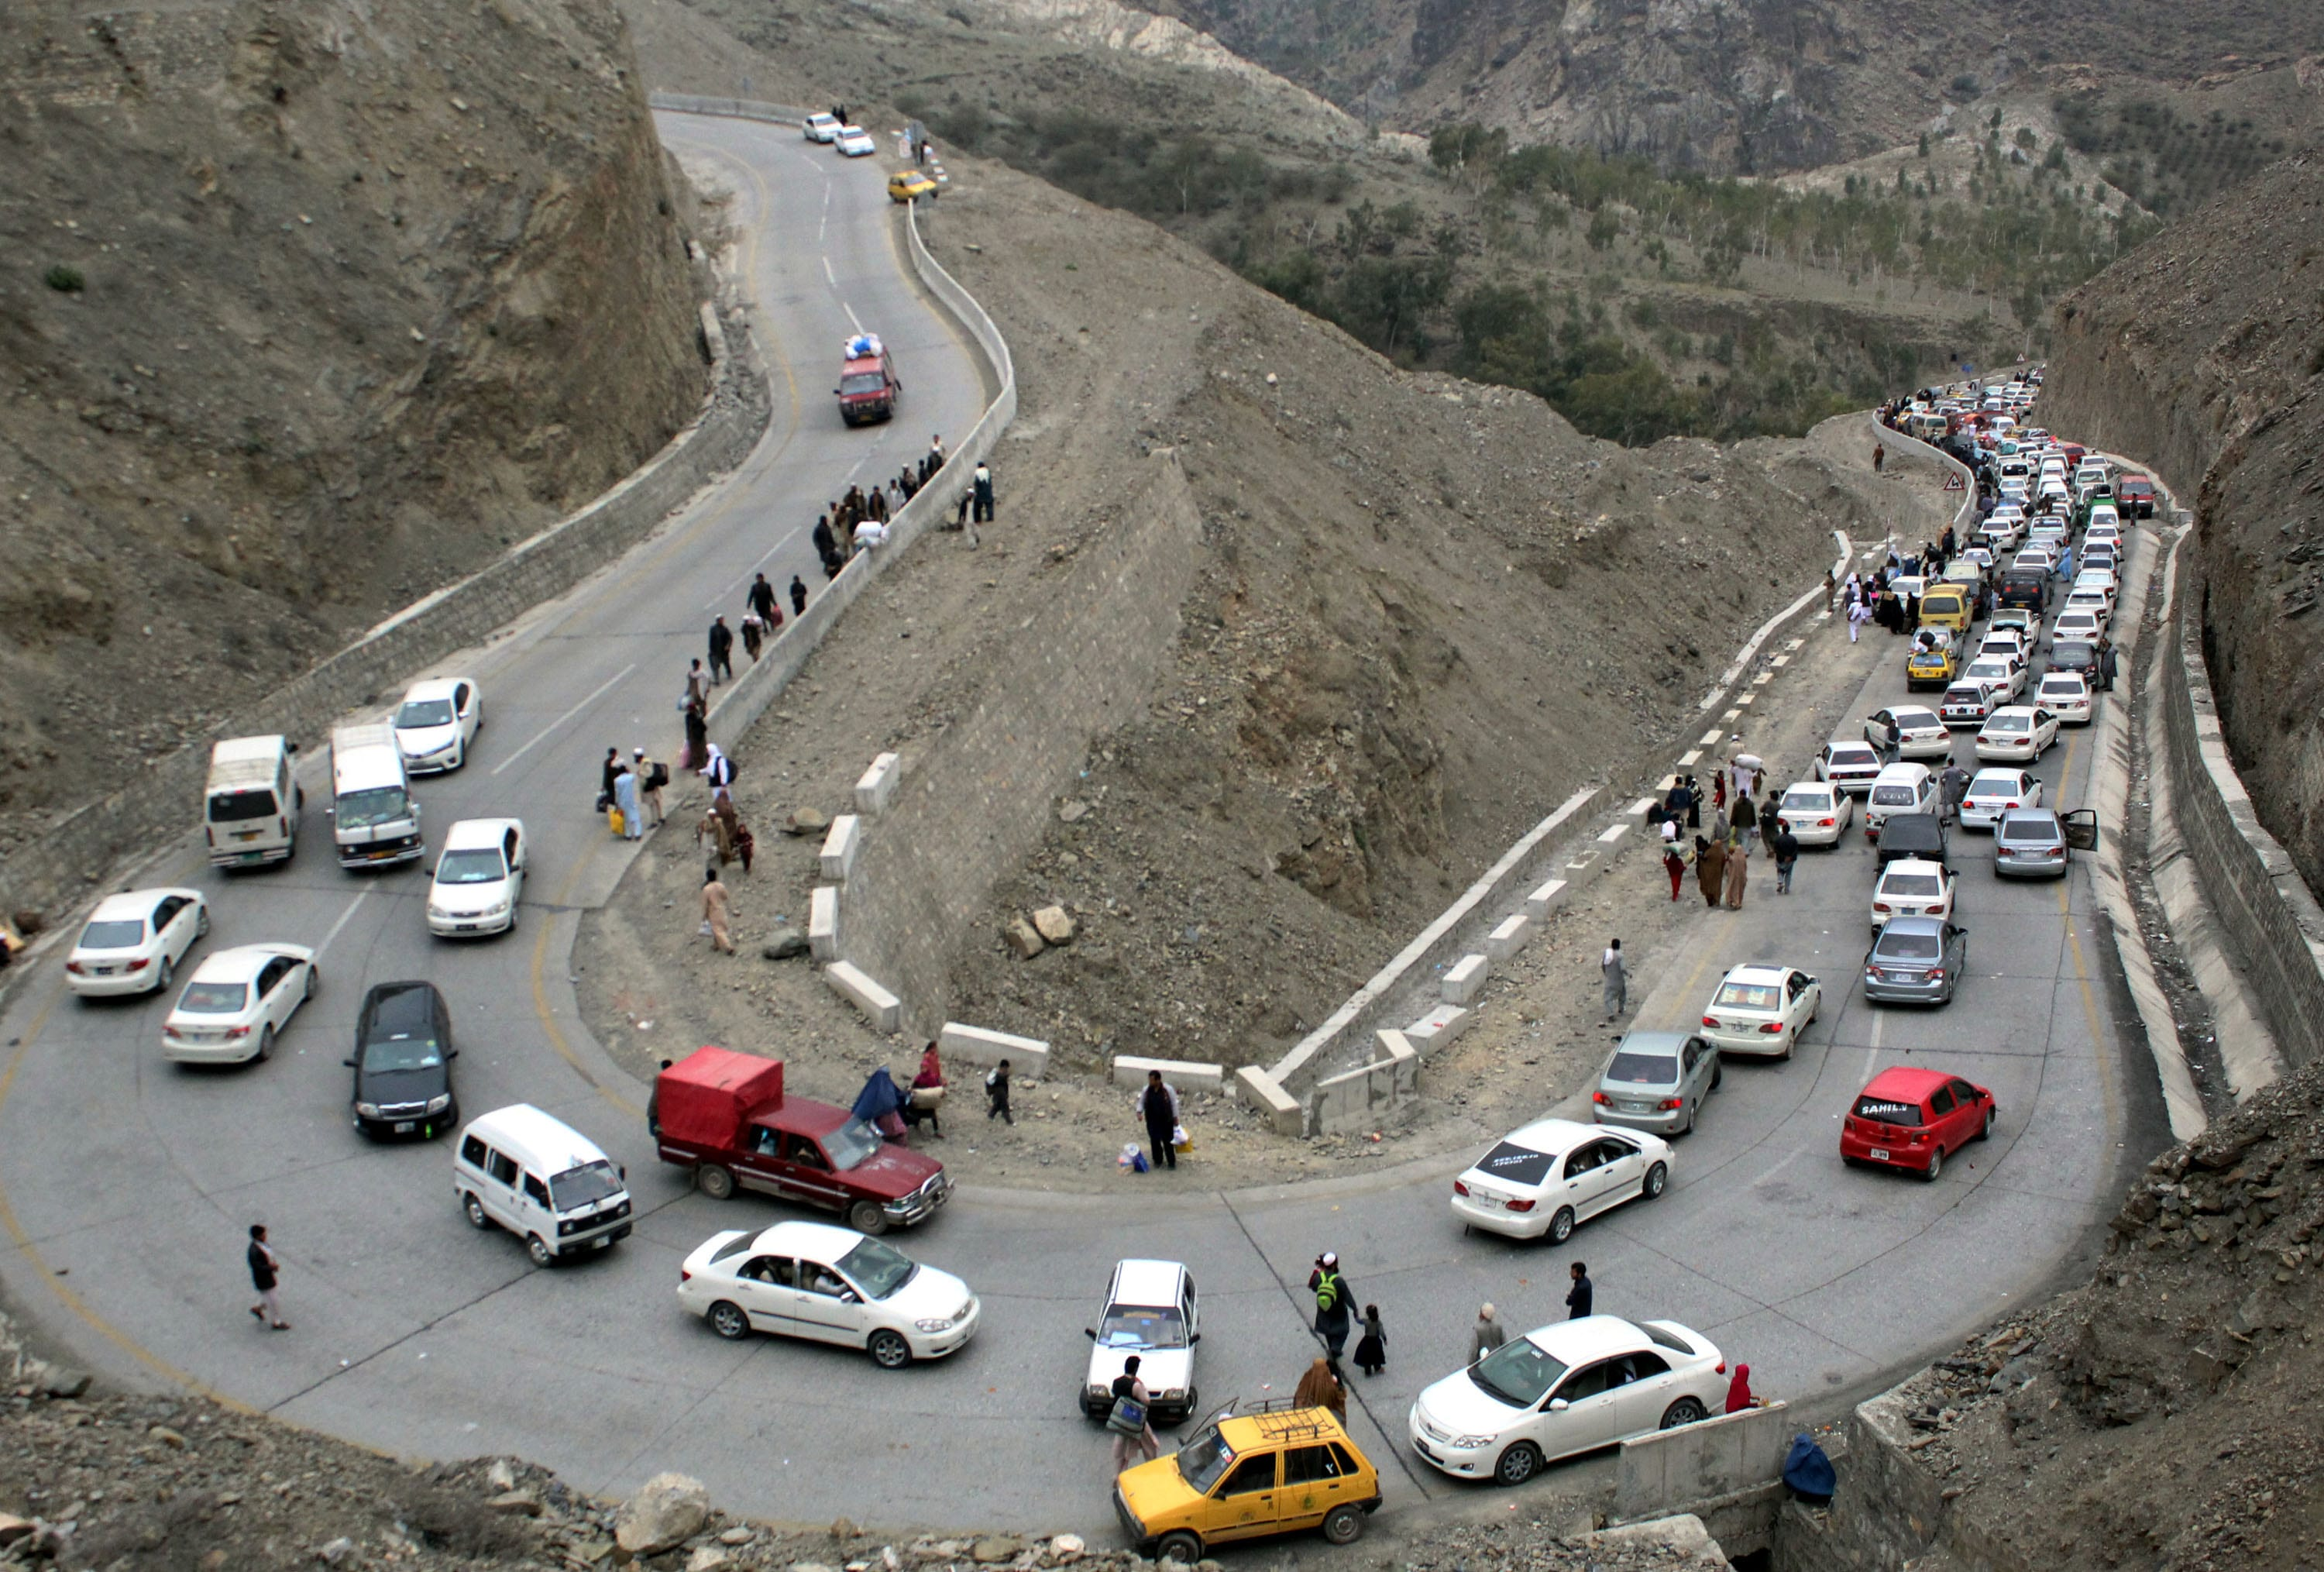 Image [TORKHAM, March 7, 2017 -- Vehicles en rout to Afghanistan line up near Pak-Afghan border in northwest Pakistan's Torkham on March 7, 2017. (Xinhua/Sidique)]